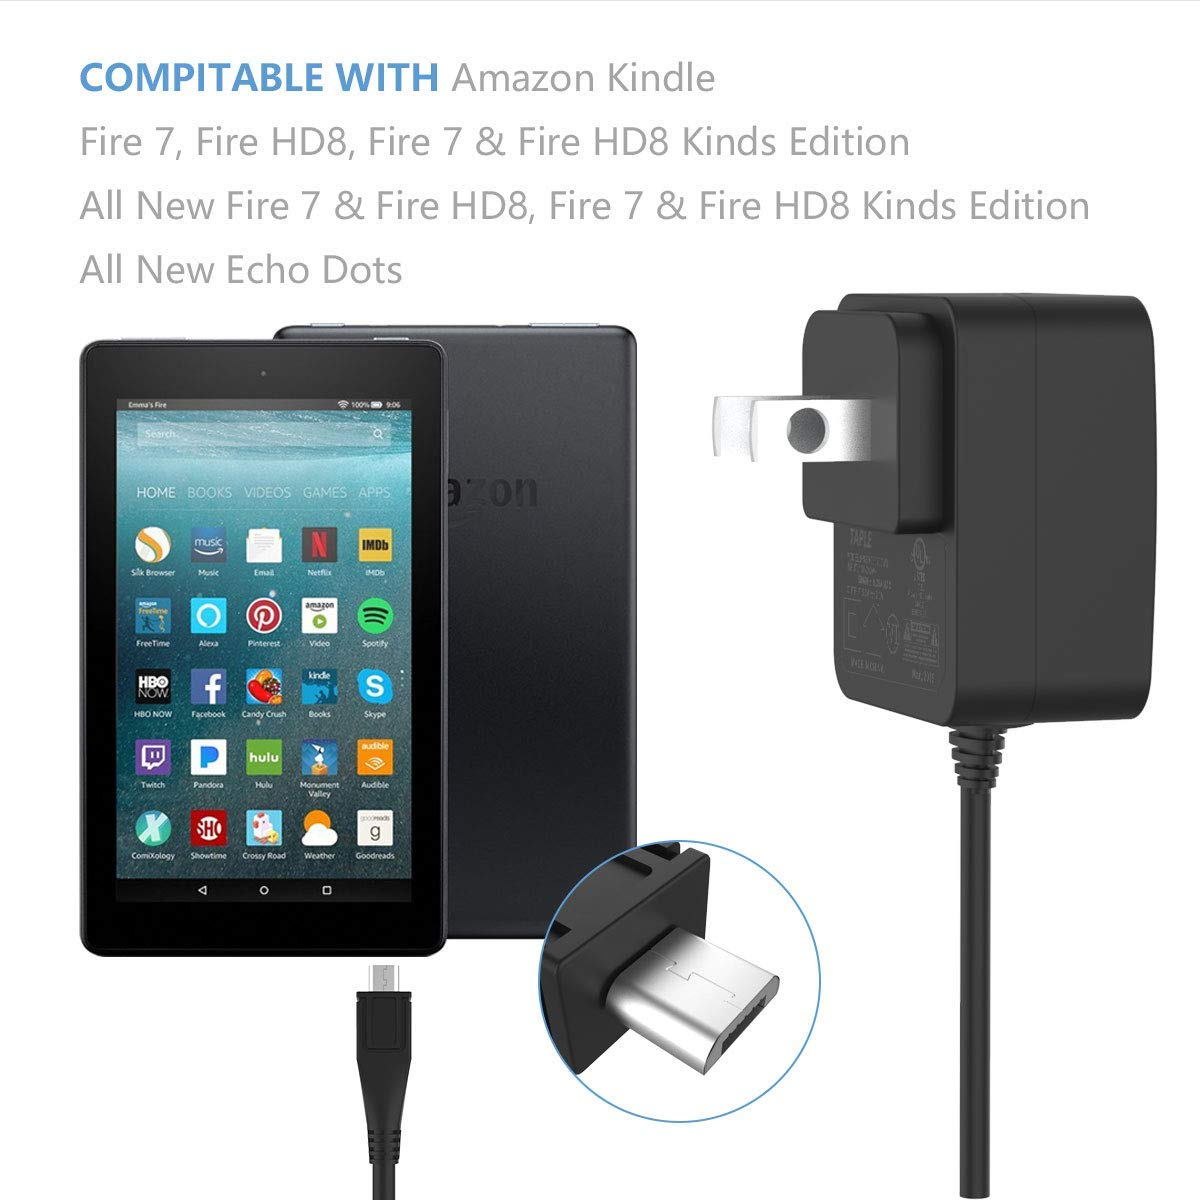 Kindle Fire HD 10 Fast Charger UL Listed Rapid Charger Adapter with 6.5 Feet Micro-USB Cable Compatible for Kindle Fire HD 10 Tablet 5th 6th 7th Generation and Fire HD 10 Kid Edition Asus Sumsung Ga